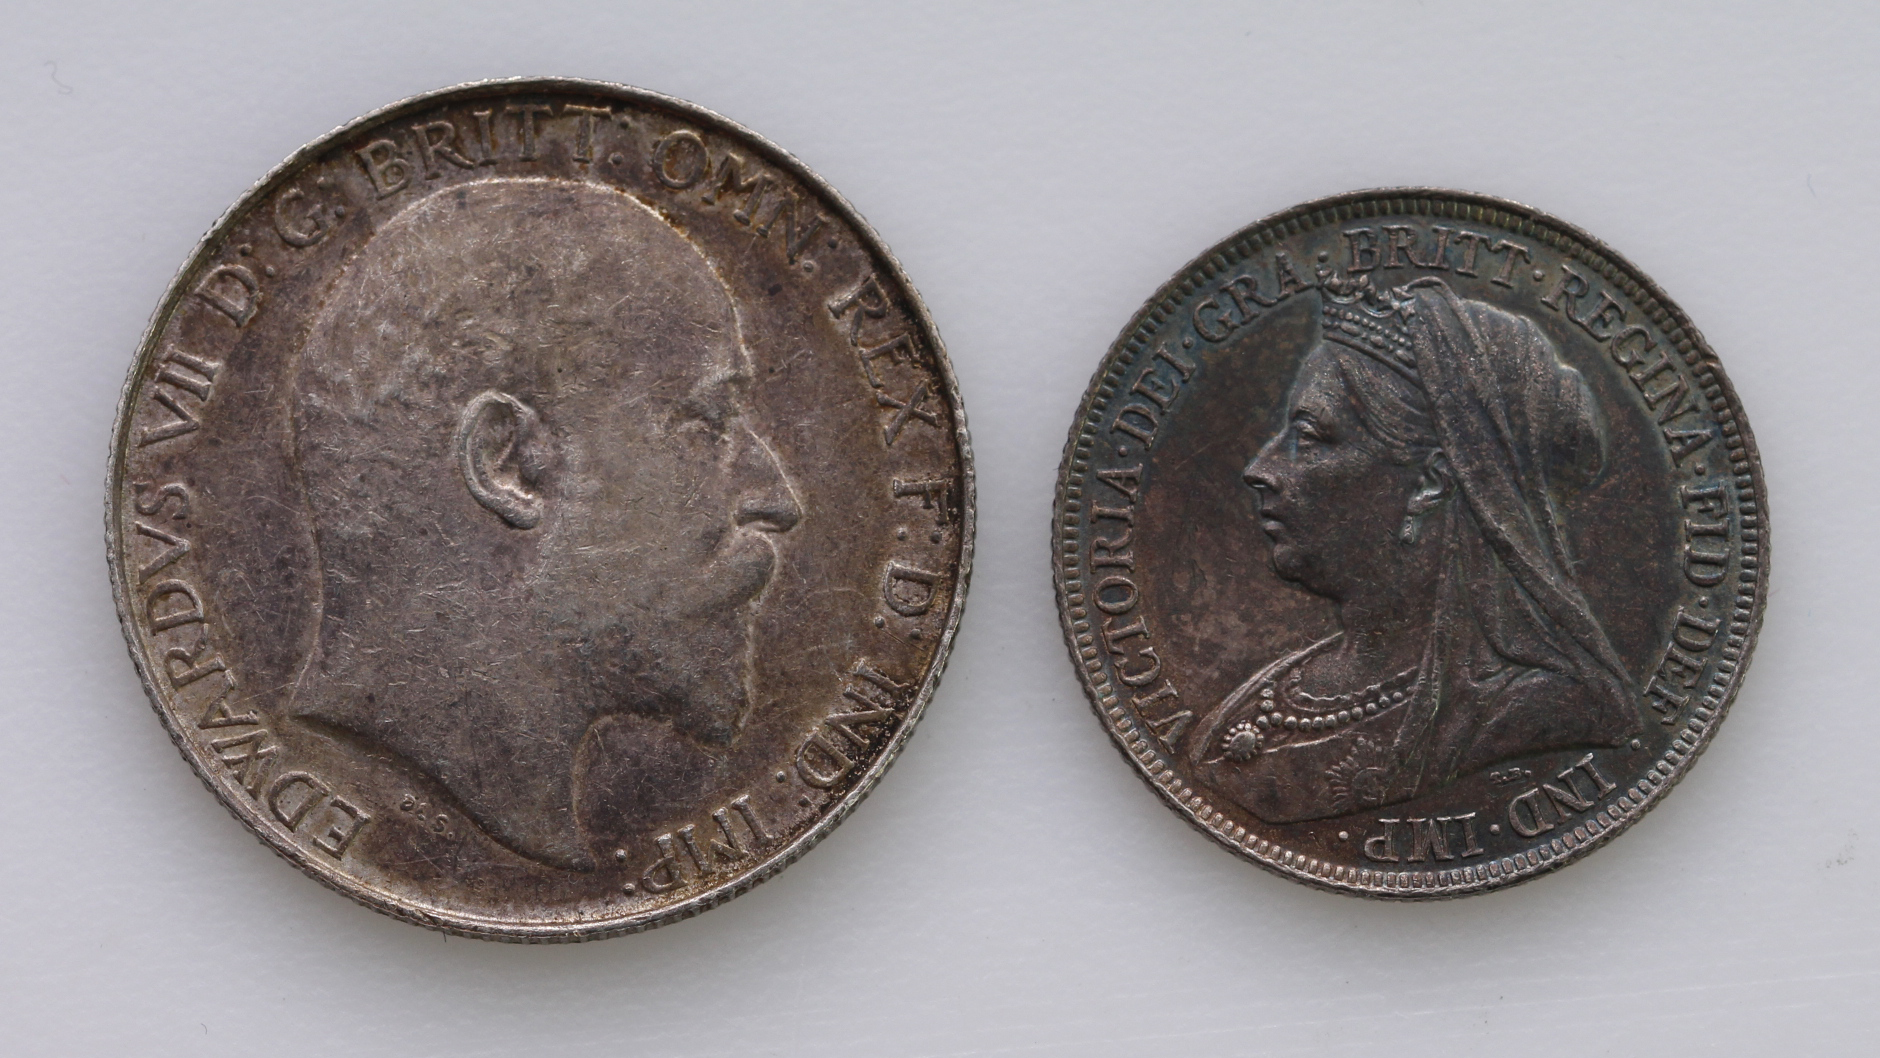 Shilling 1896 iridescent EF, and Florin 1906 VF